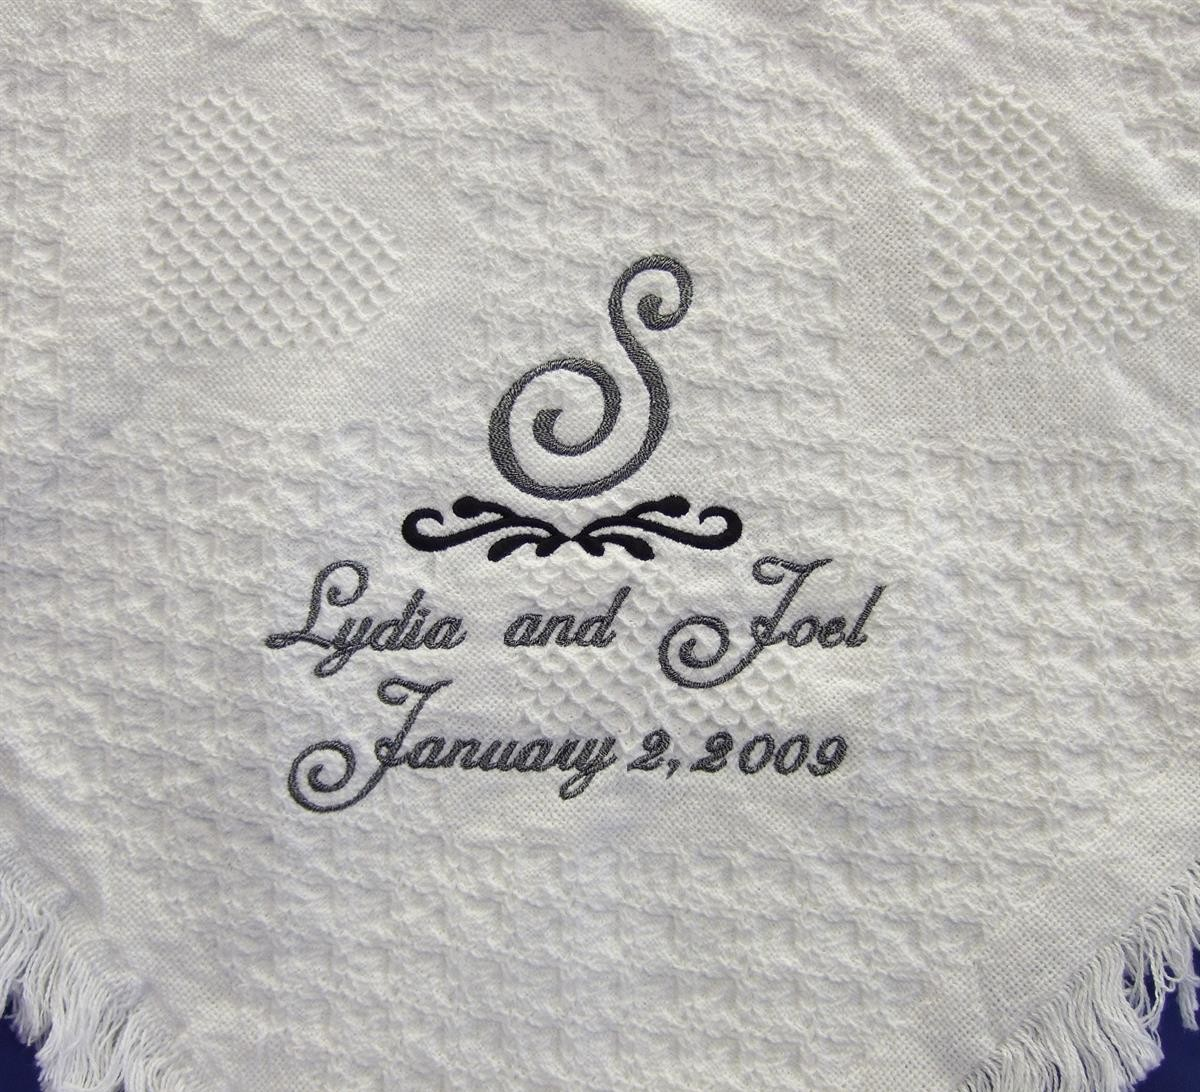 Personalized wedding blanket with Monogram & scroll